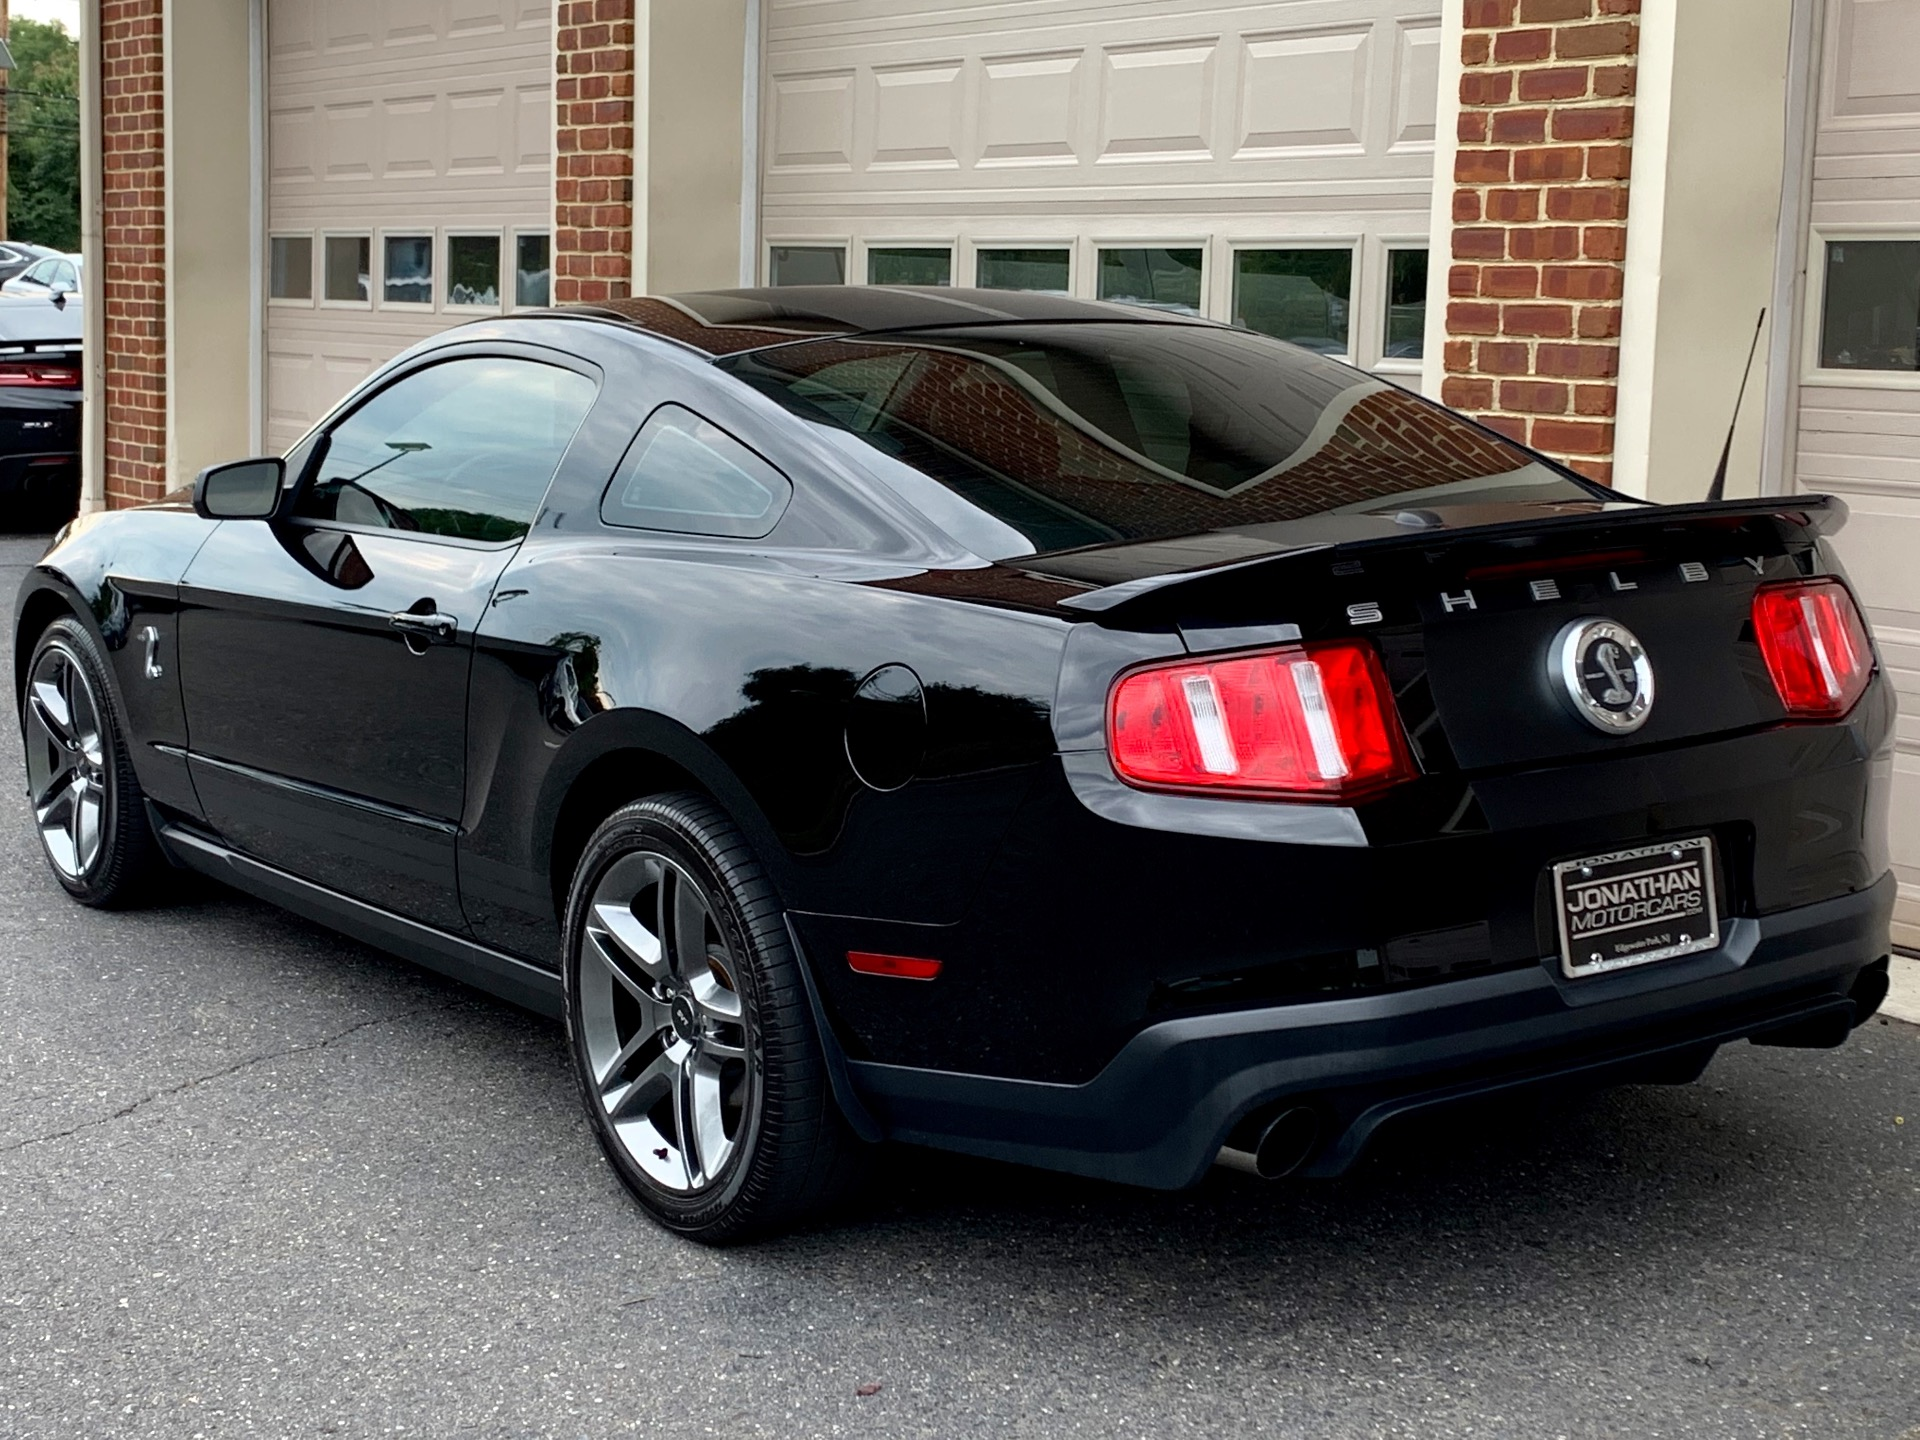 Used-2010-Ford-Shelby-GT500